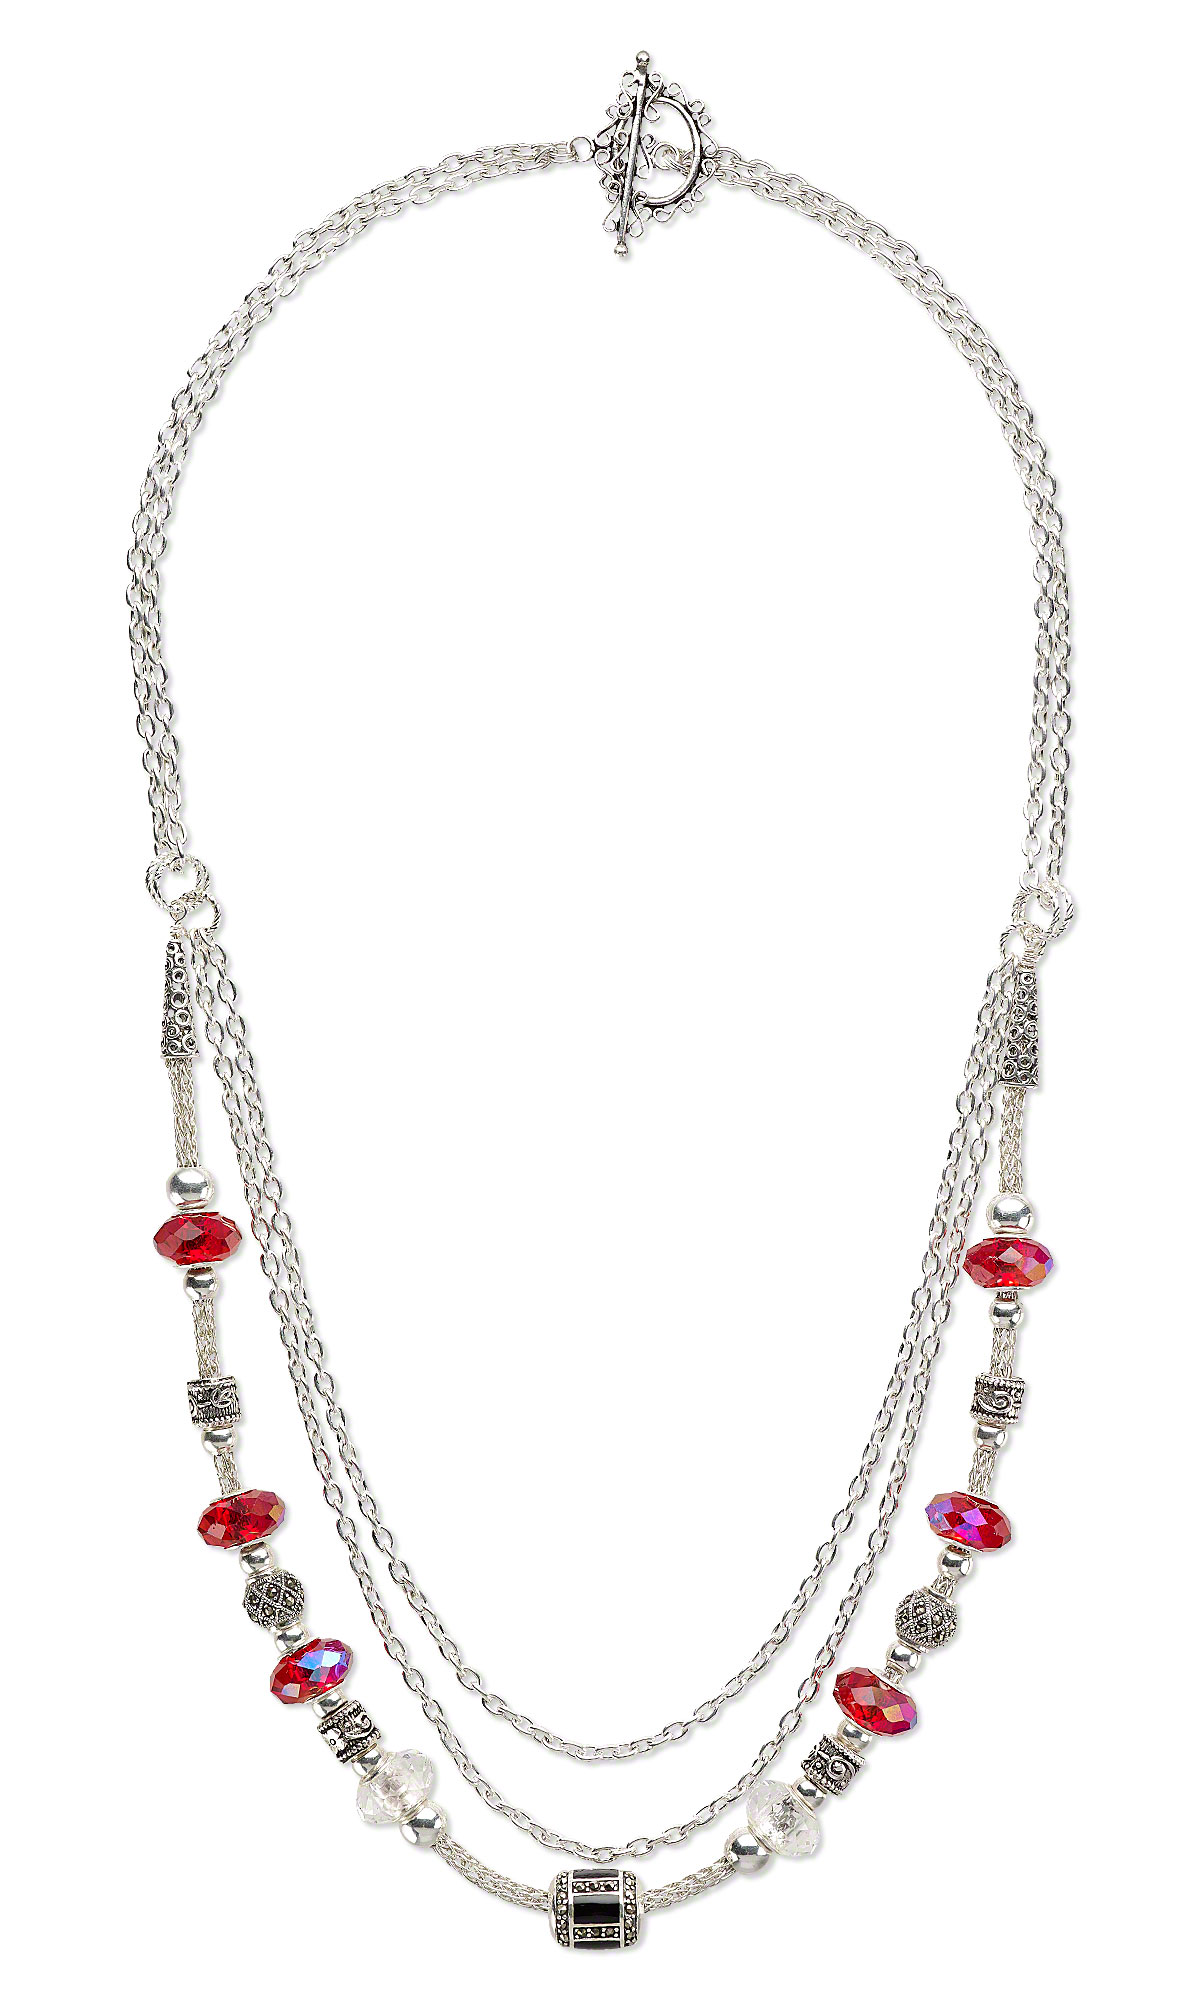 Jewelry Design - Triple-Strand Necklace with Dione® Large-Hole Beads ...